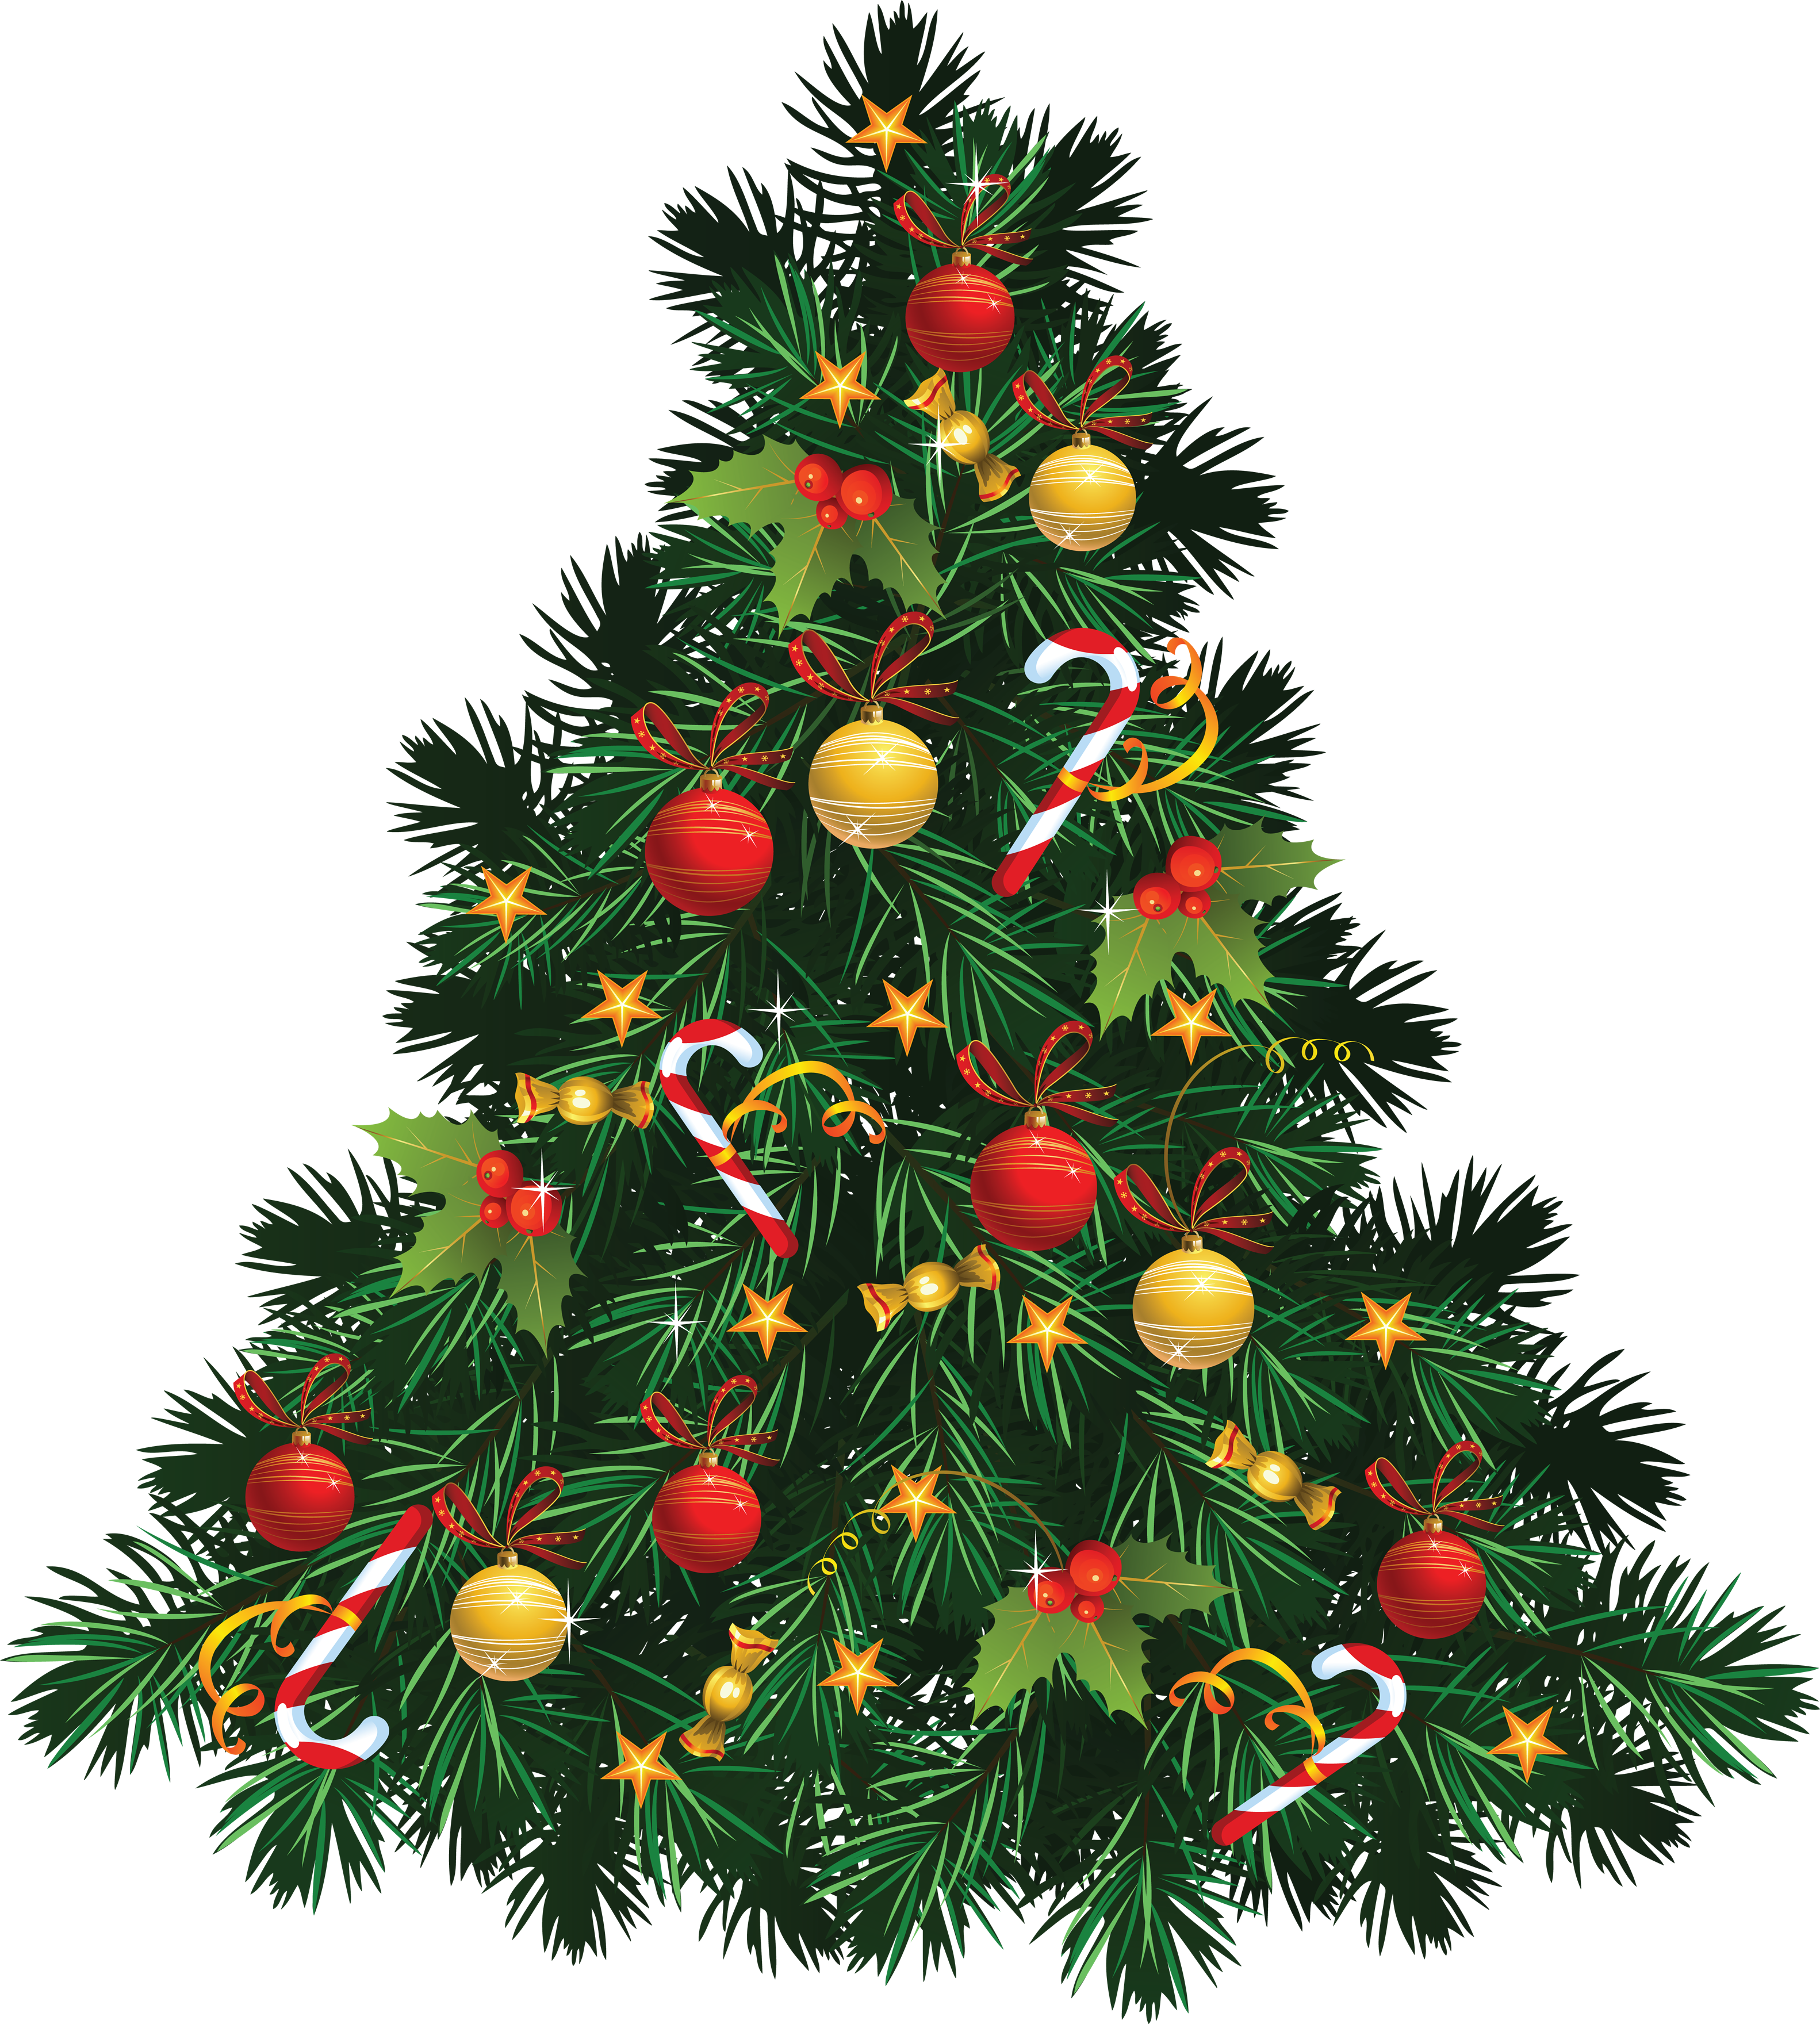 Image PNG Transparent Christmas Tree image #31854